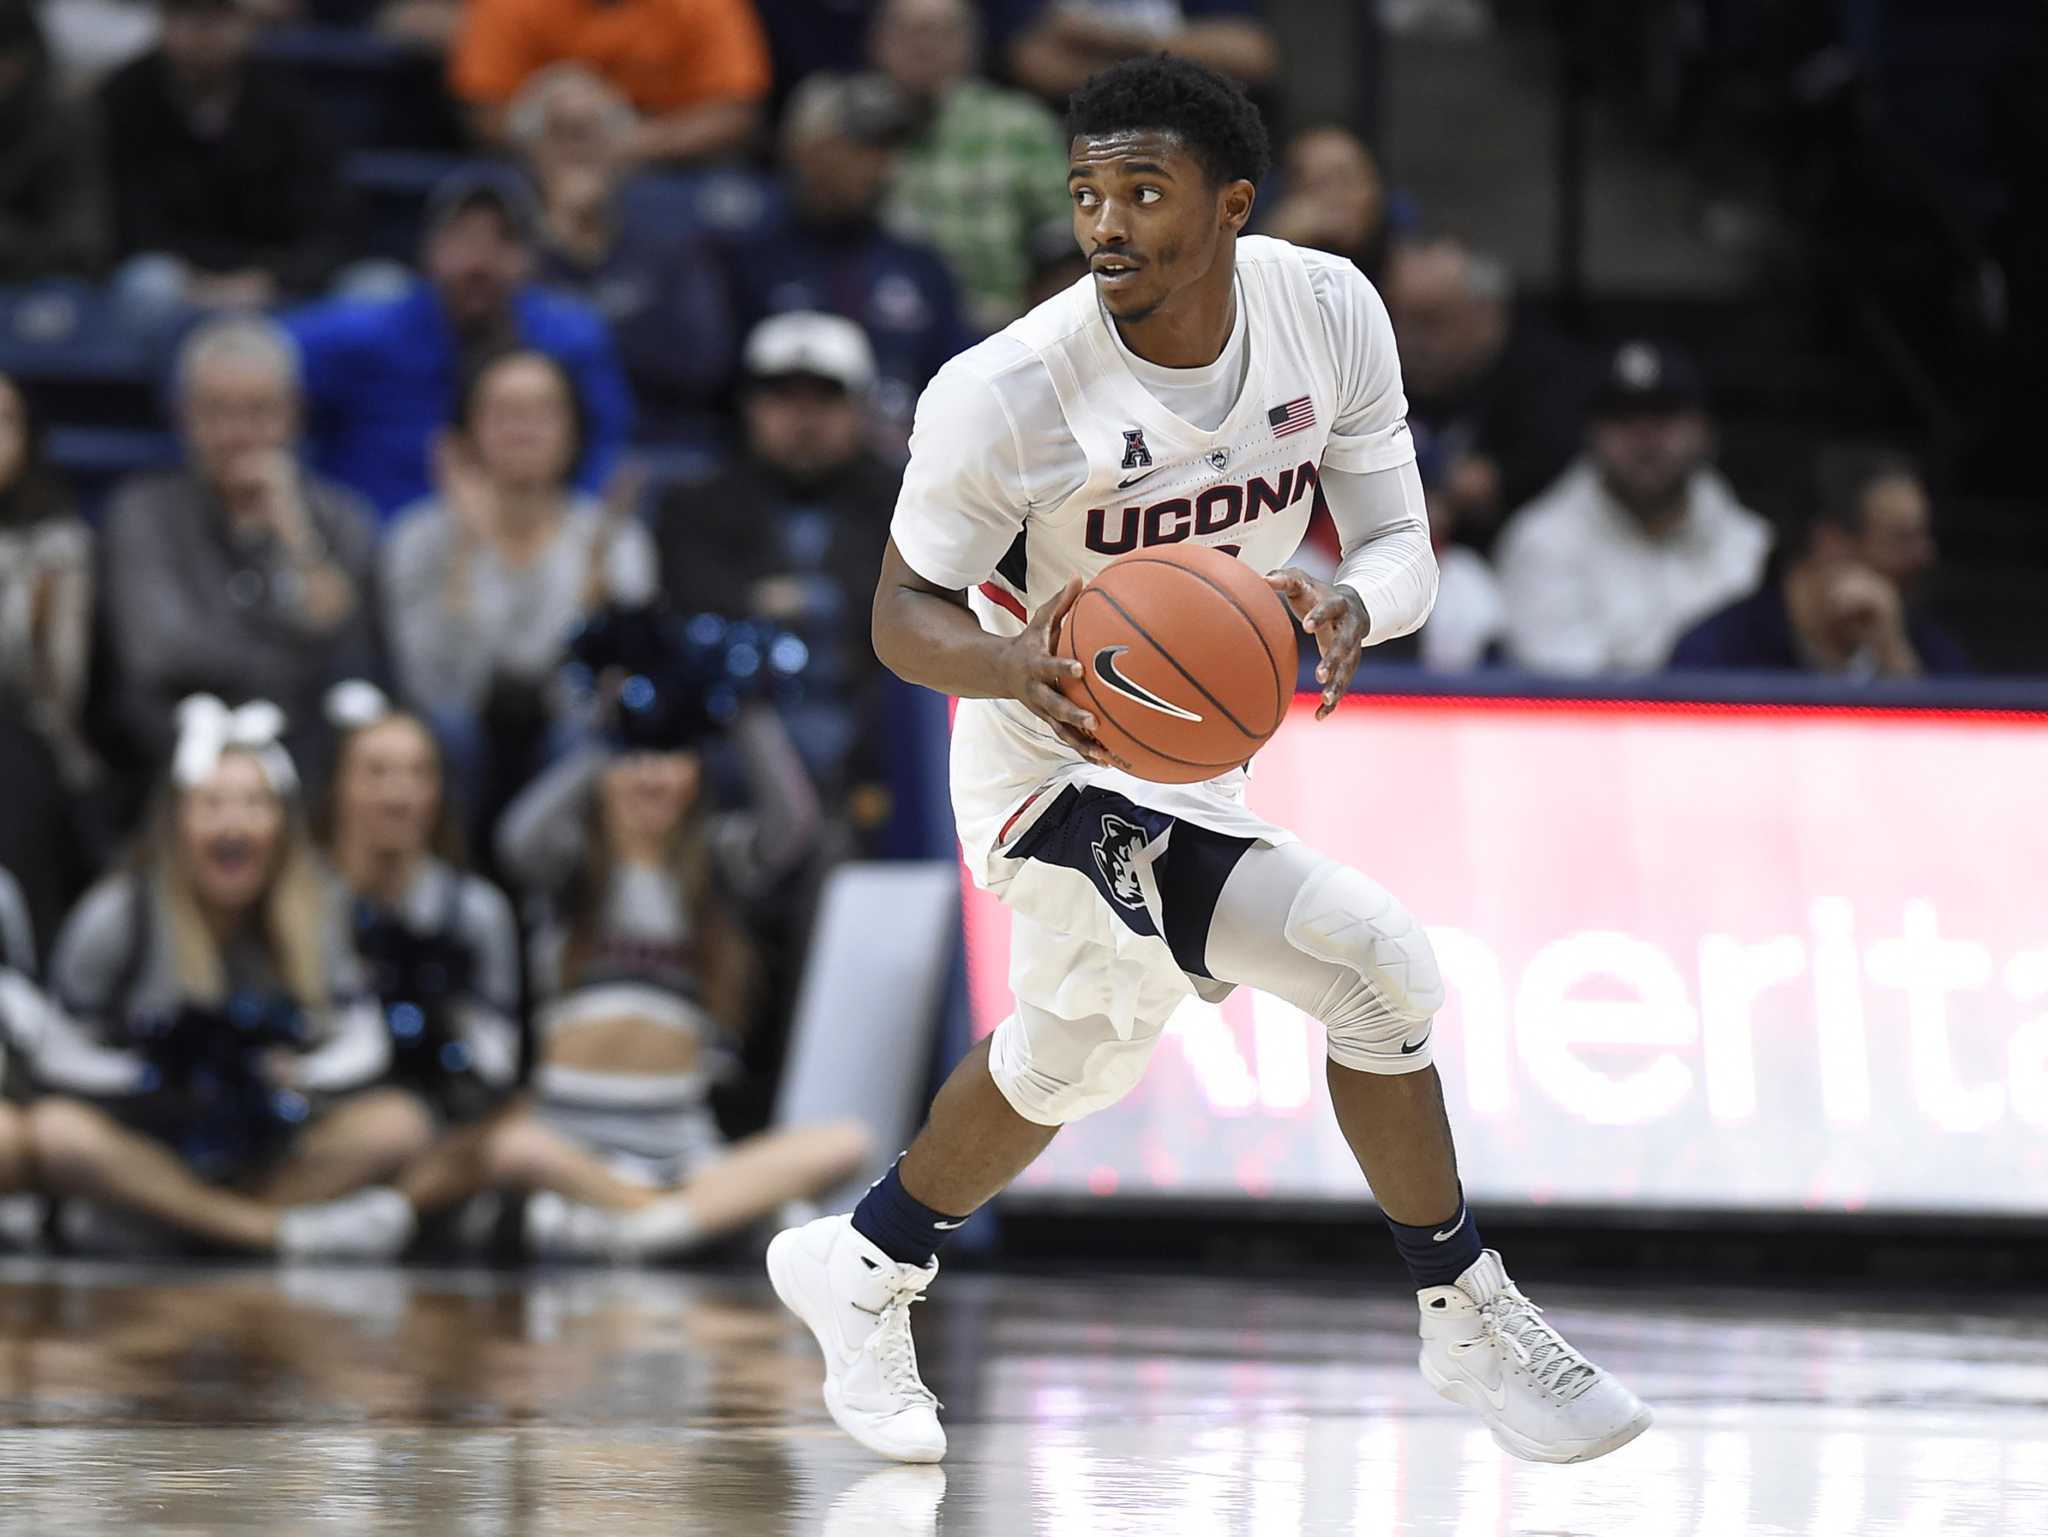 UConn picked to finish 6th in AAC; Gilbert, Vital earn 2nd team nods